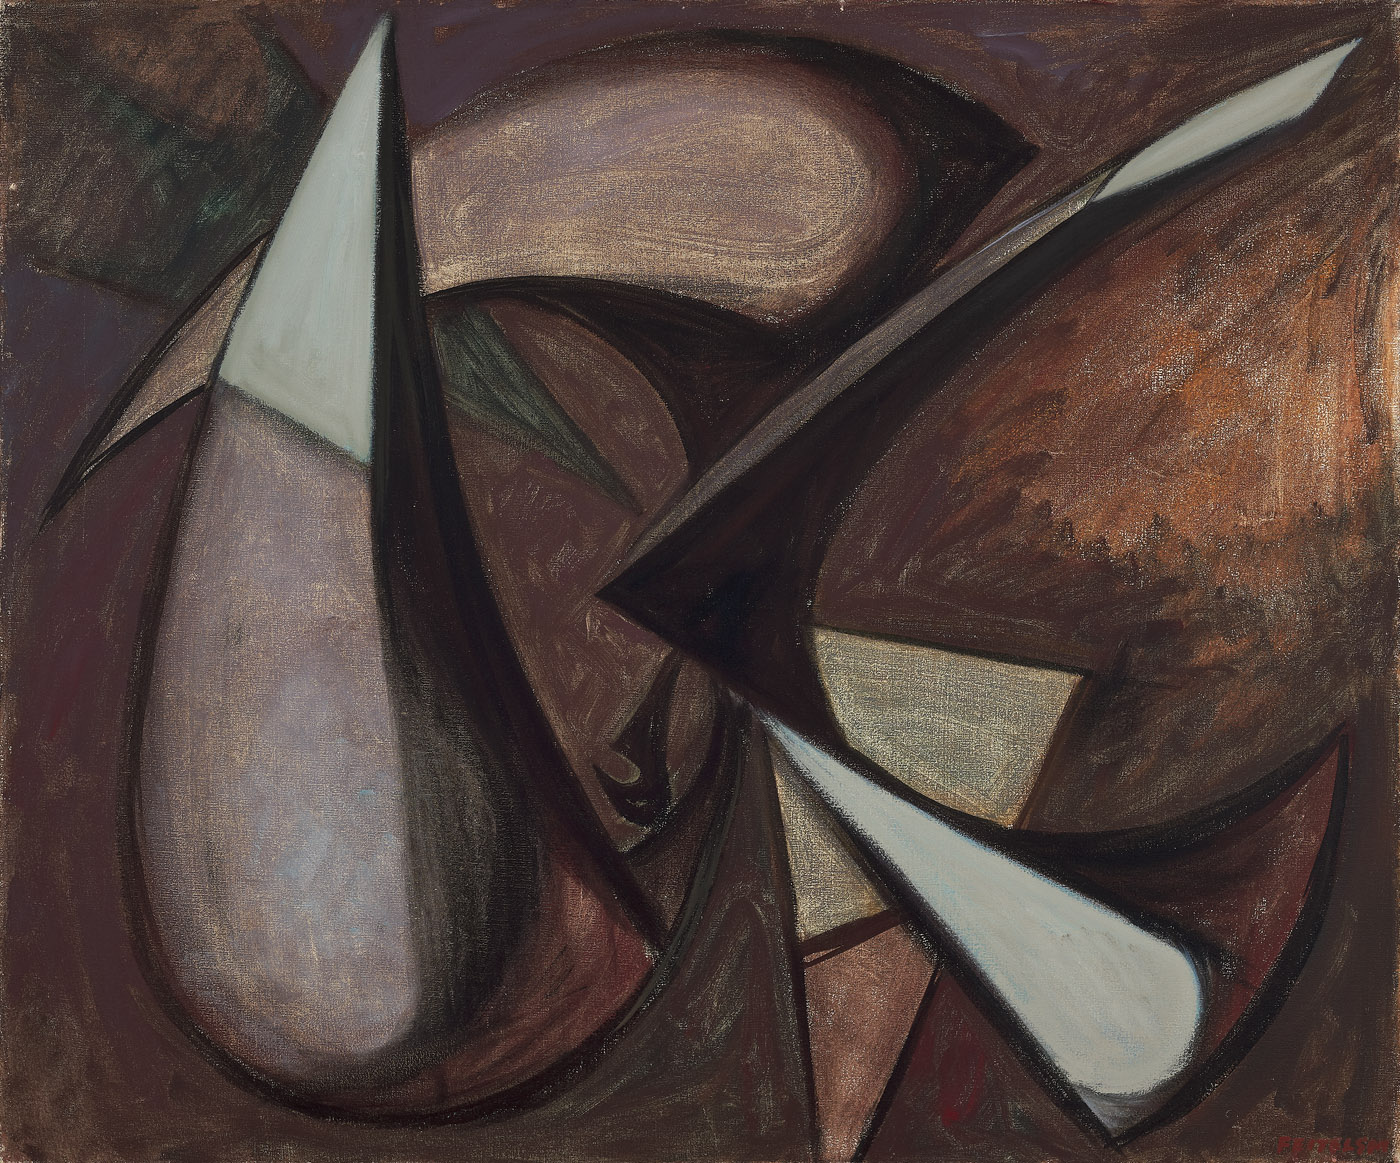 Prometheus , 1949  oil on canvas 30 x 36 inches; 76.2 x 91.4 centimeters